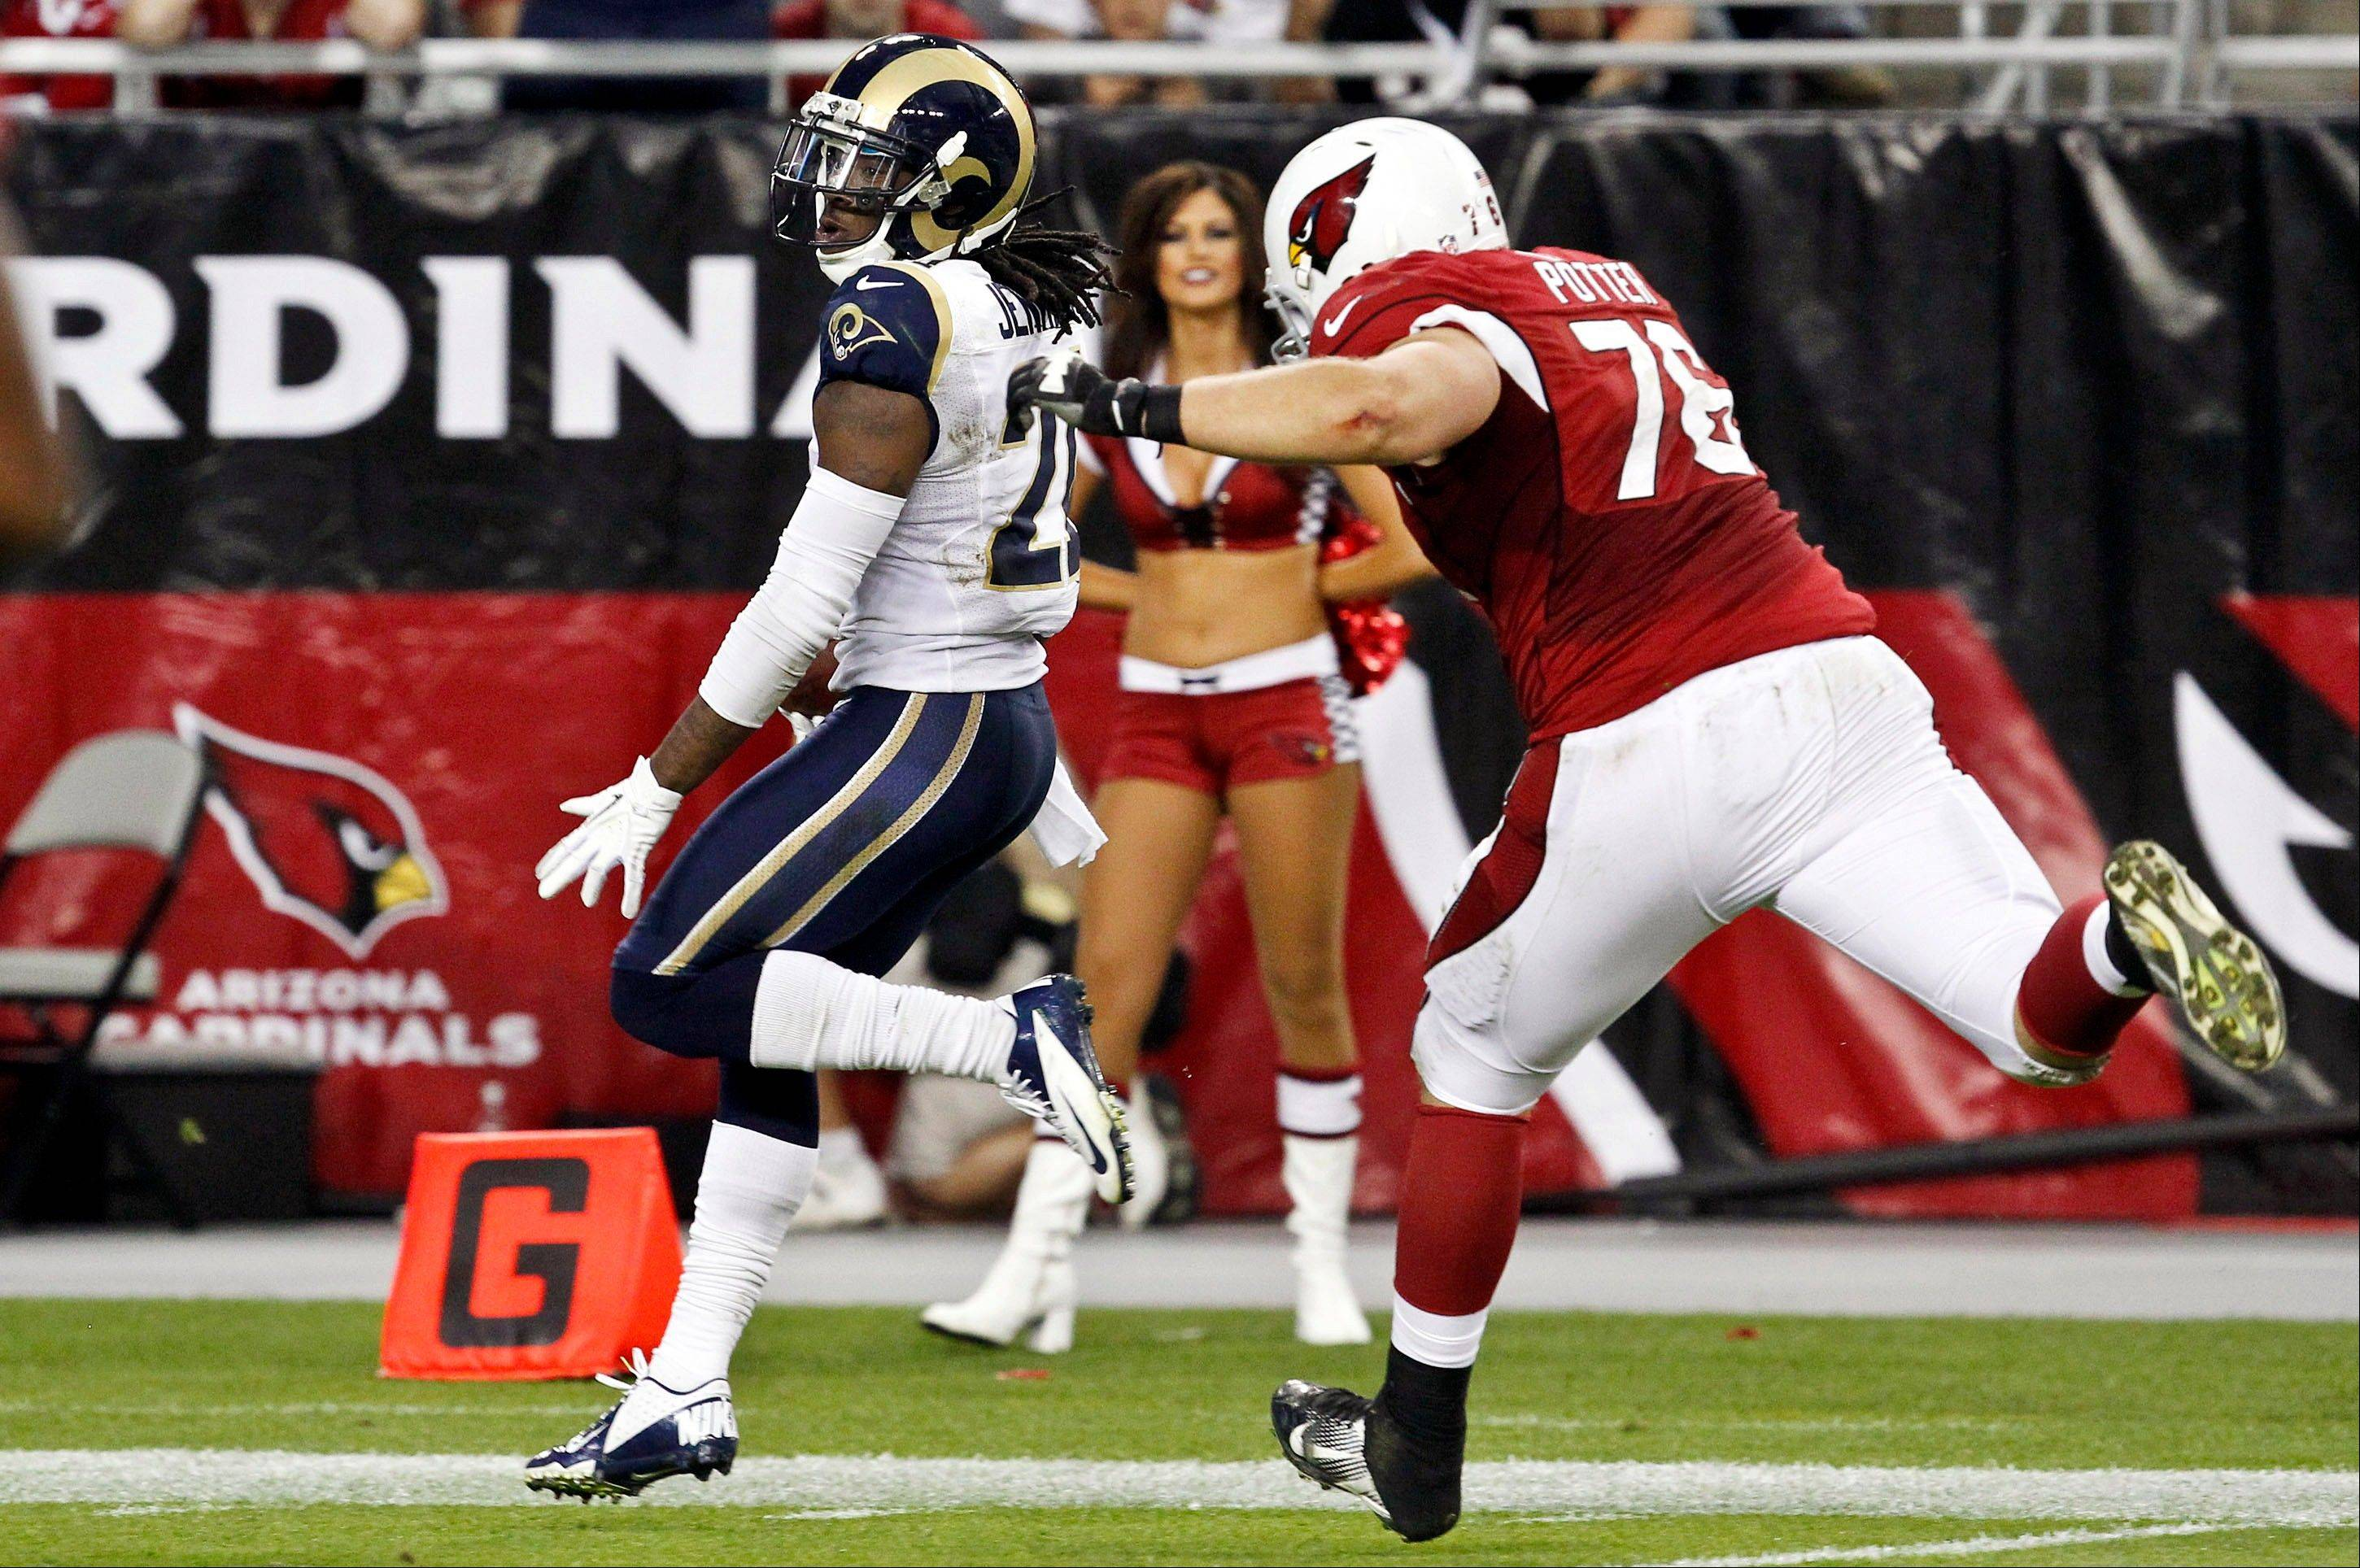 St. Louis Rams� Janoris Jenkins, left, returns an interception for a touchdown as Arizona Cardinals� Nate Potter gives chase during the second half Sunday, Nov. 25, 2012, in Glendale, Ariz. The Rams won 31-17.